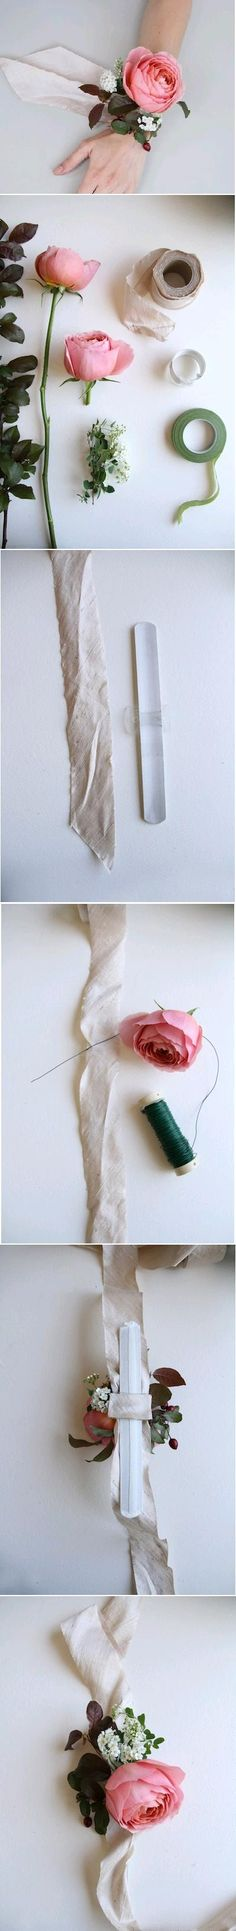 DIY Wedding Wrist Flower